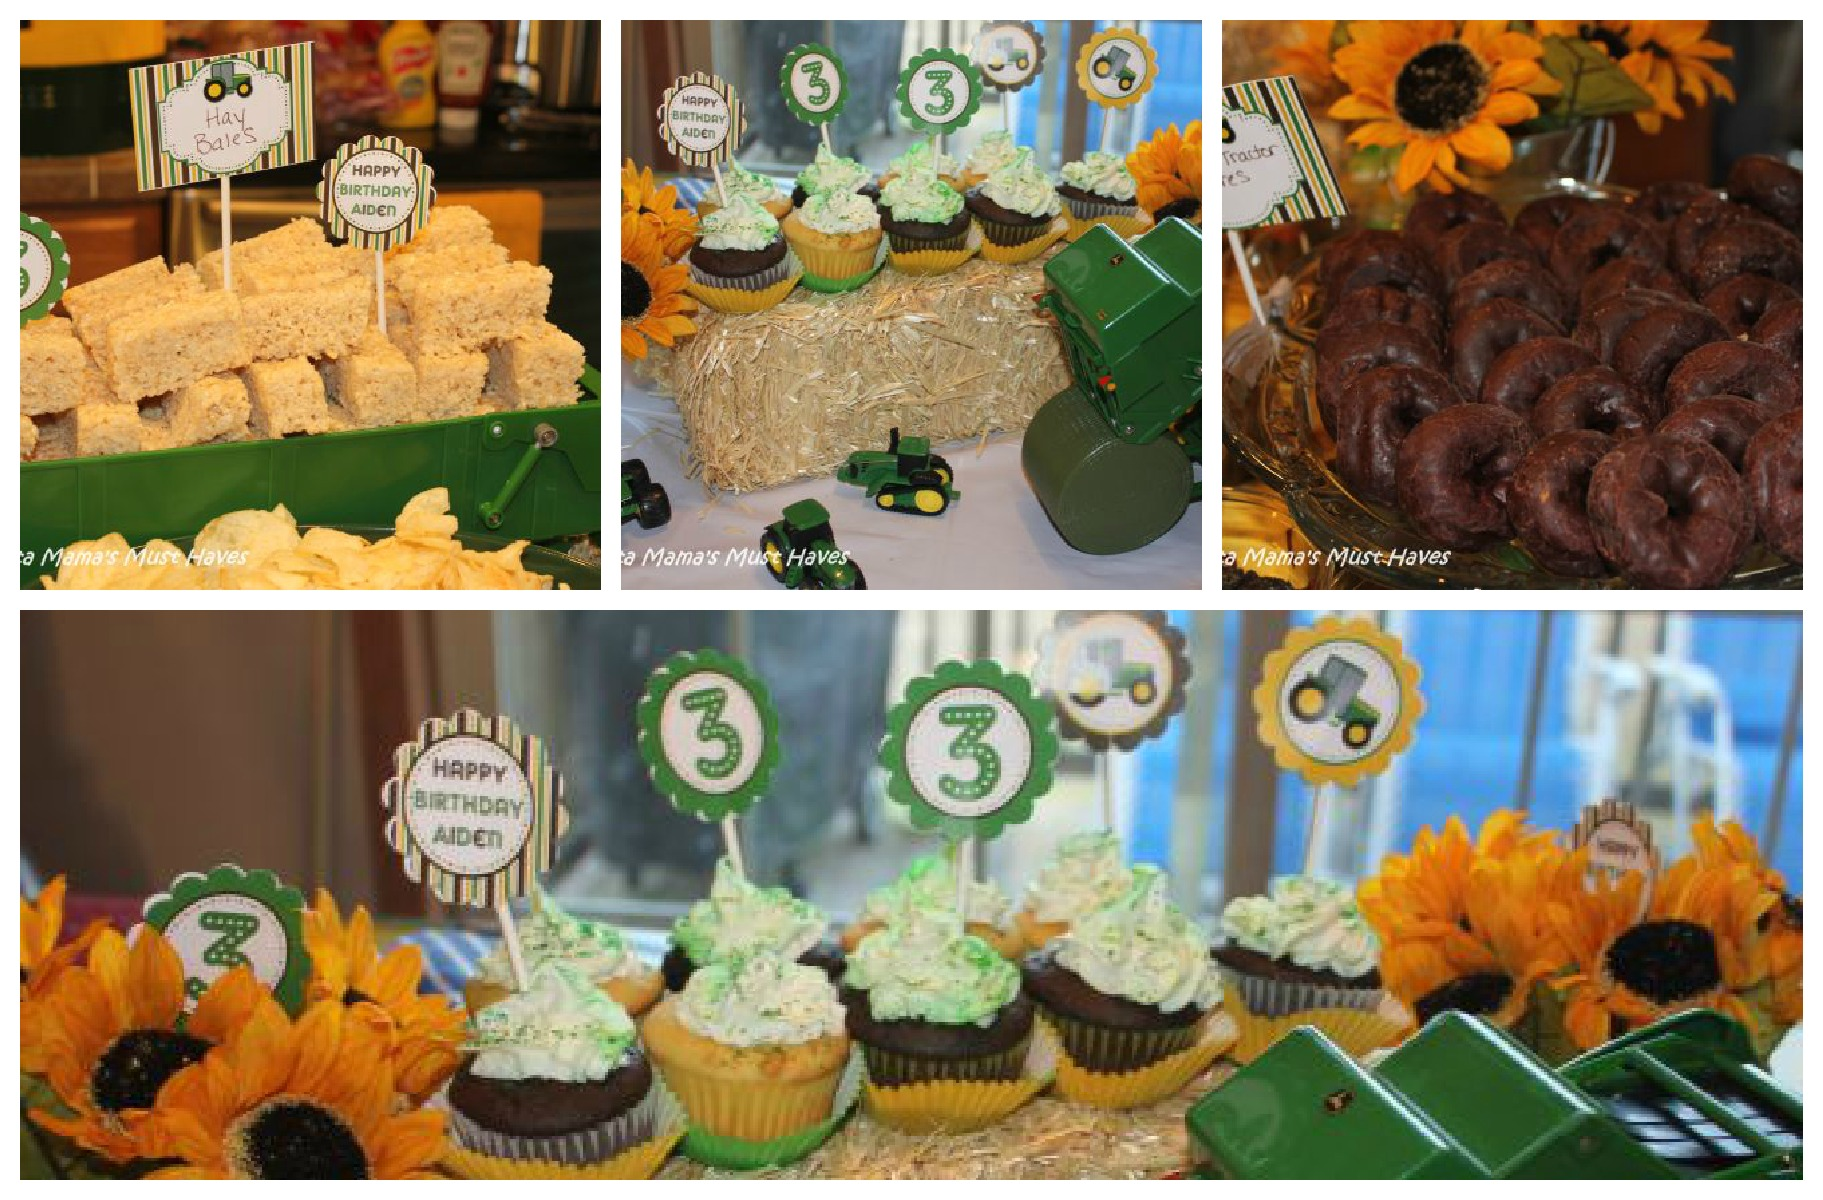 John Deere Tractor Birthday Party! Food Games Favors   More!